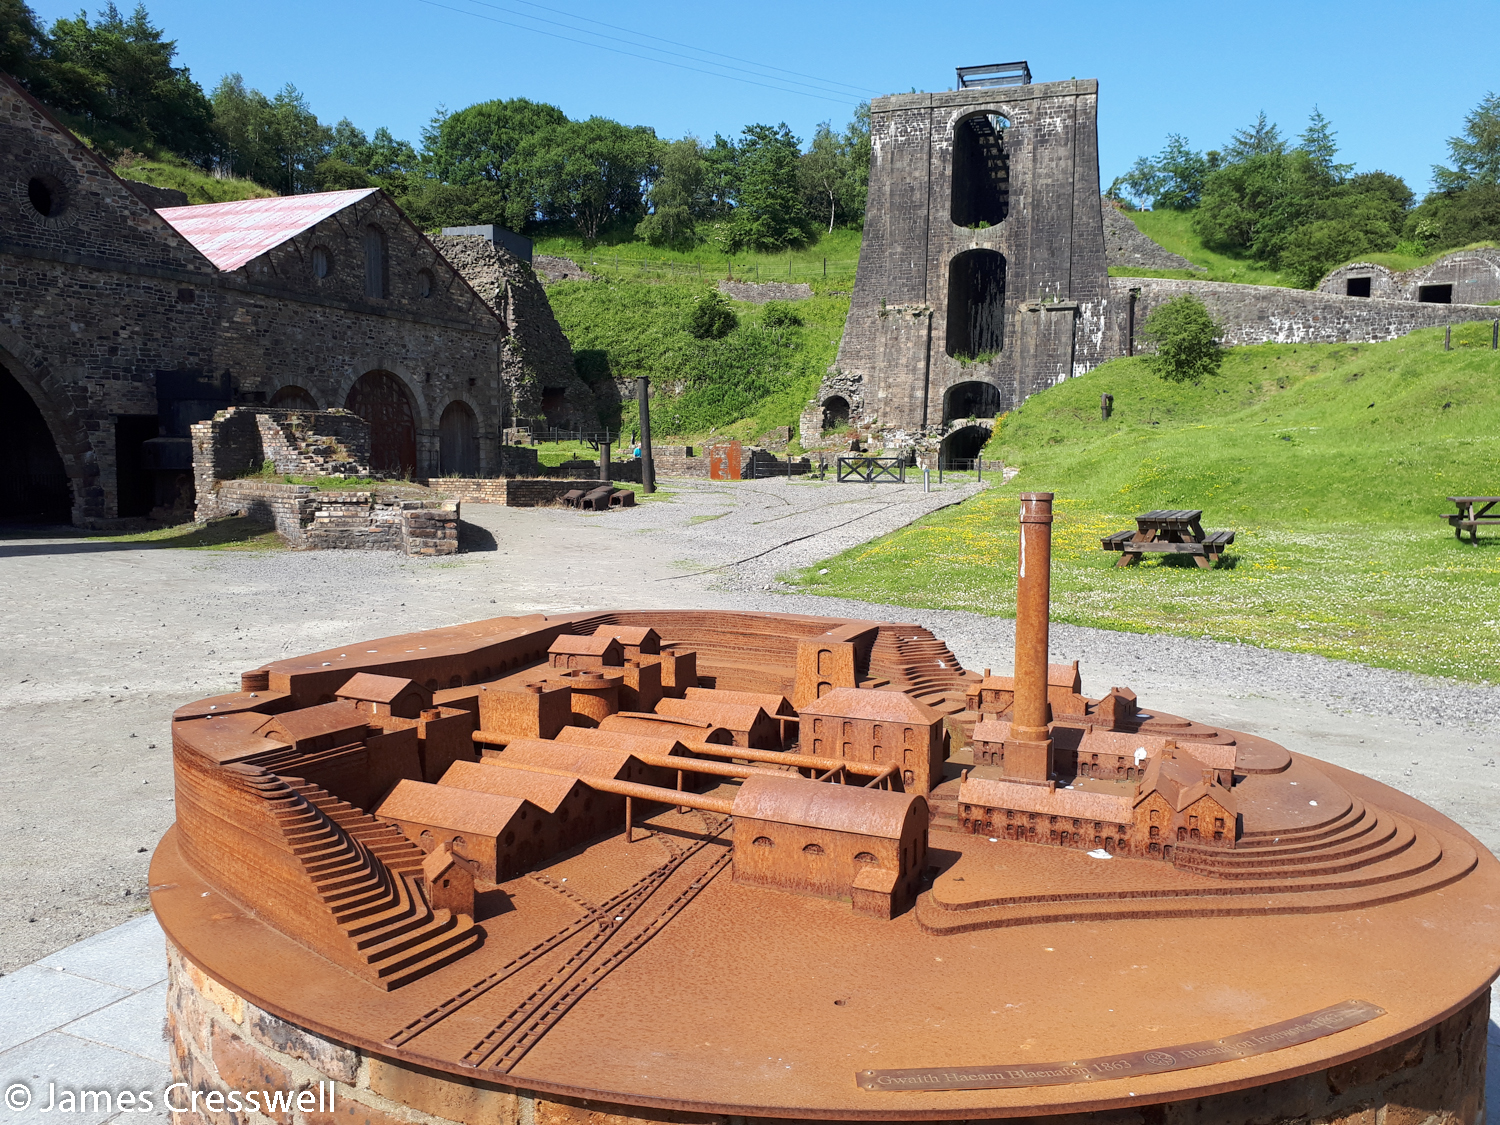 The Blaenavon Ironworks